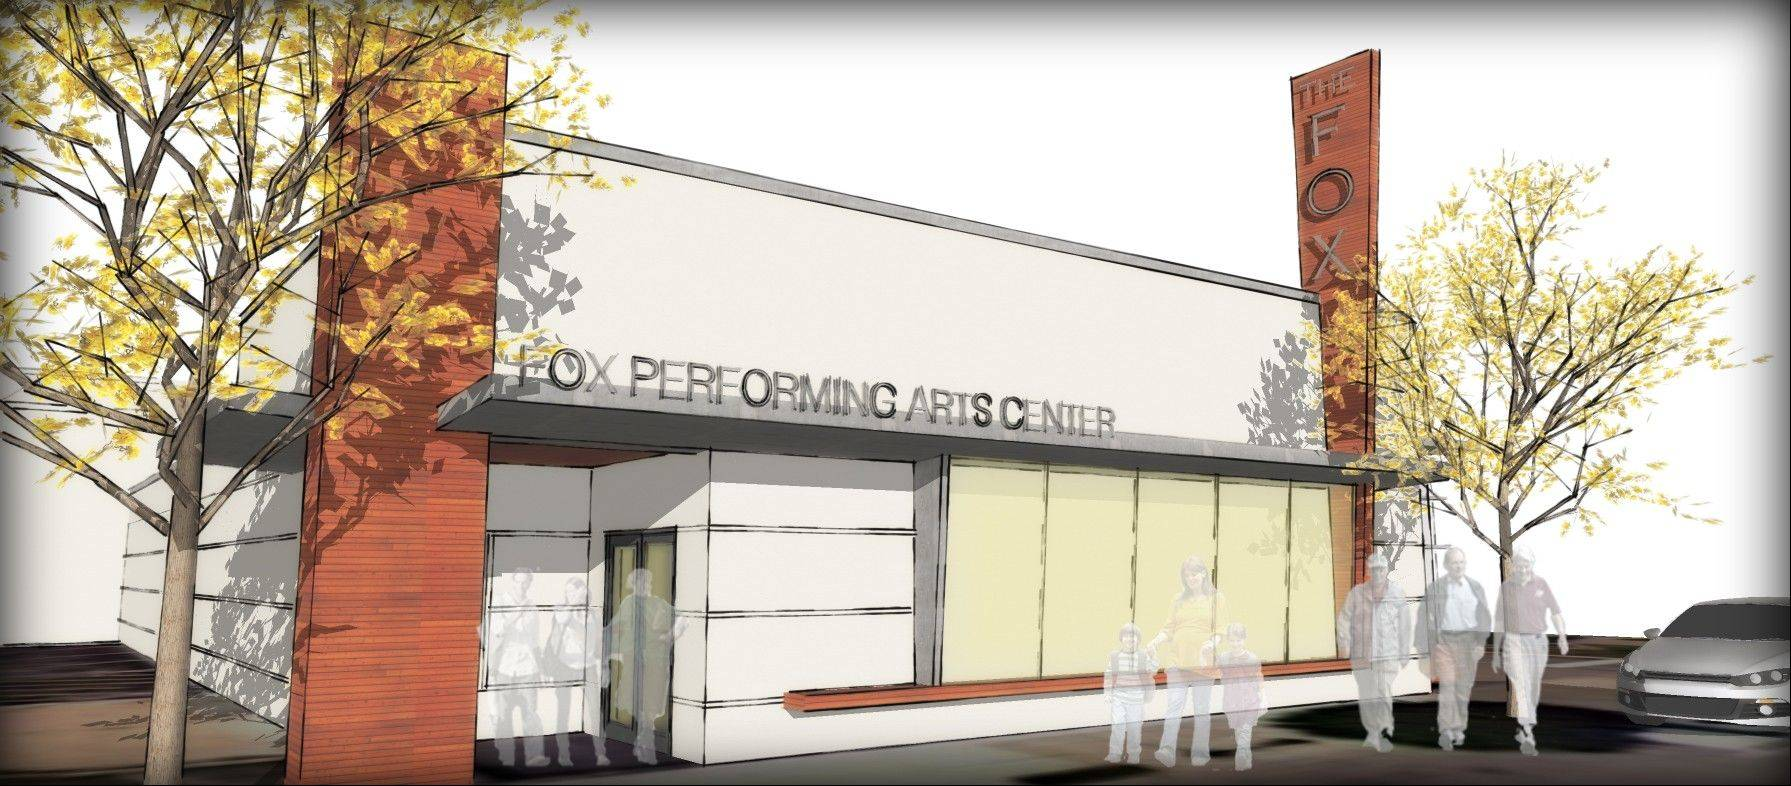 Rick Browne, a local architect, hopes to turn the old Ziegler's Ace Hardware building in downtown West Dundee into a regional performing arts center in the rendering shown here. The project, which involves renovating and adding onto the building, is expected to cost $1.8 million.